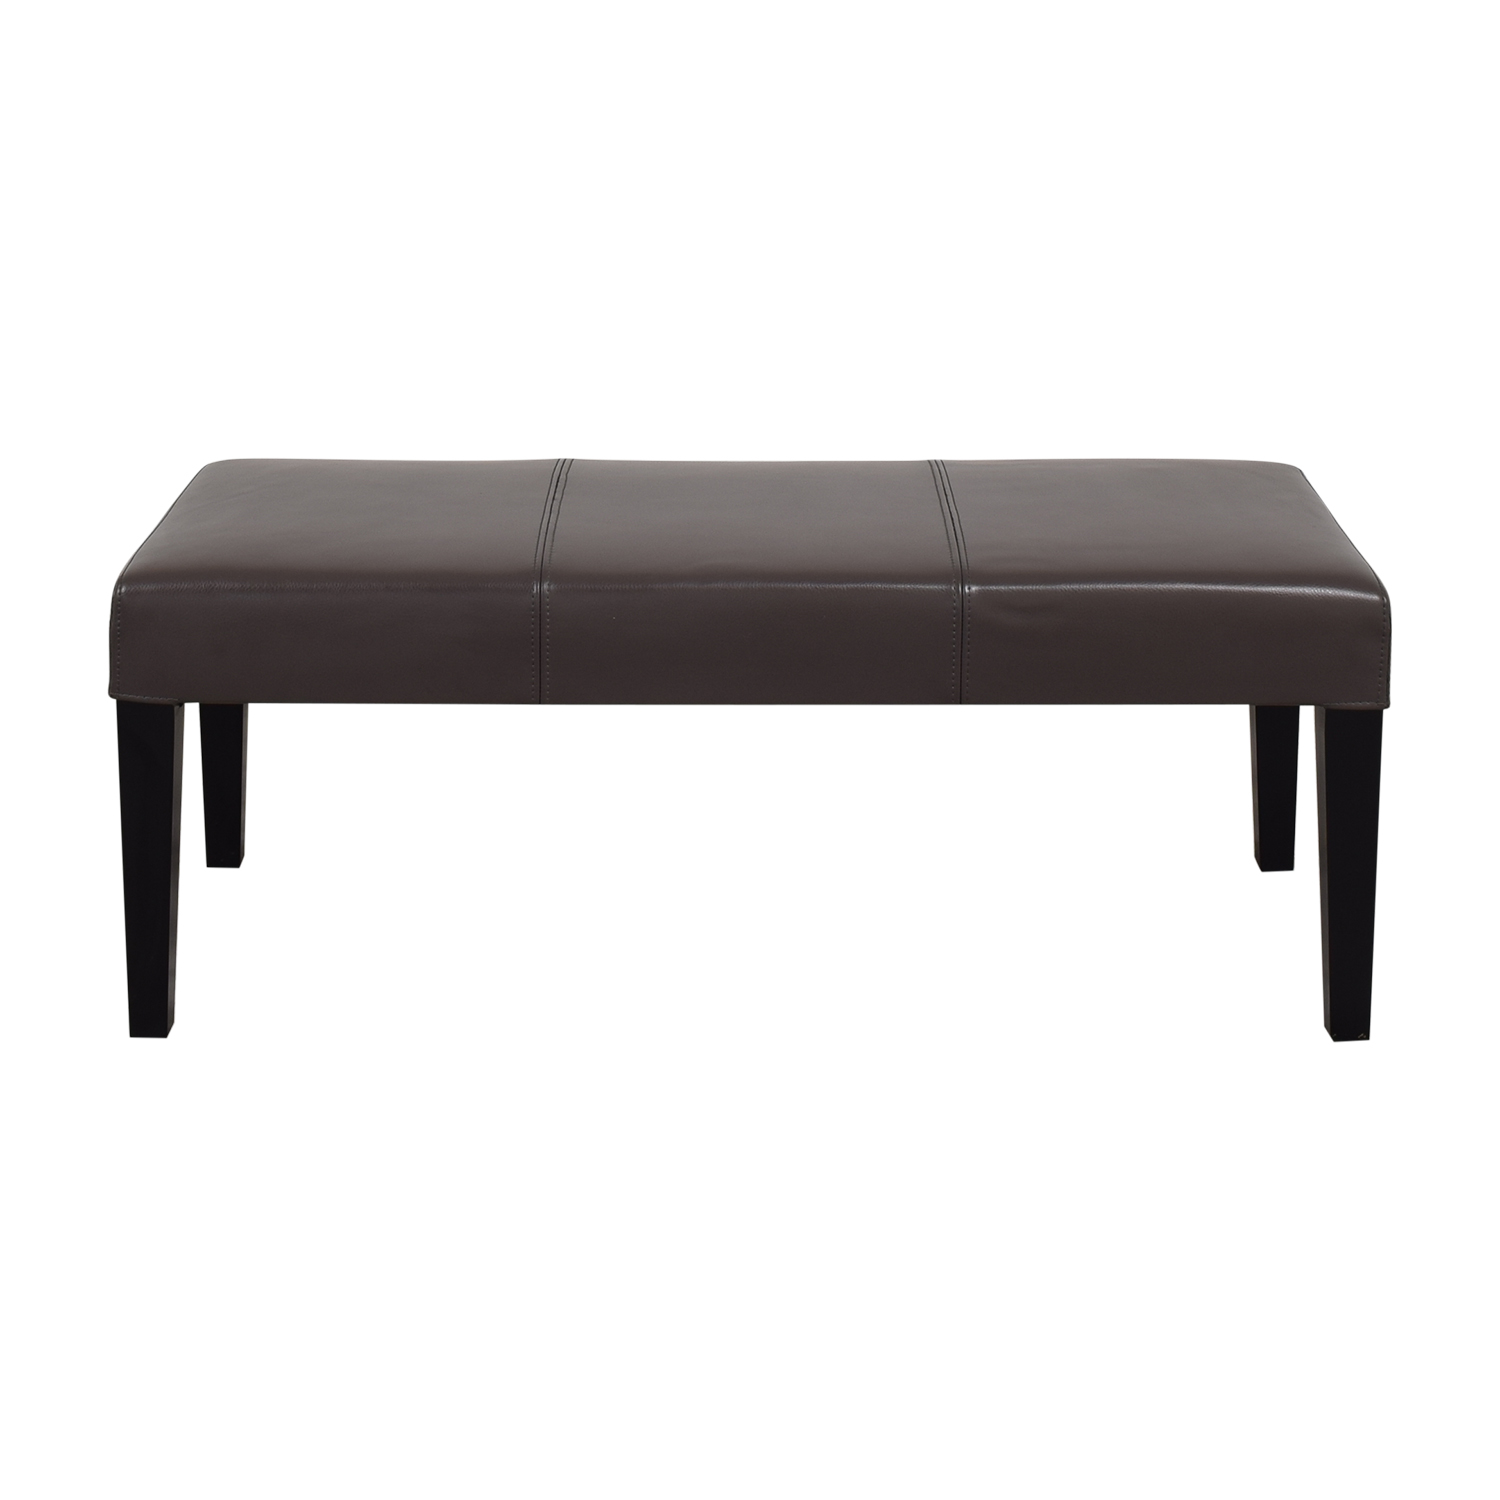 buy Crate & Barrel Lowe Backless Bench Crate & Barrel Benches